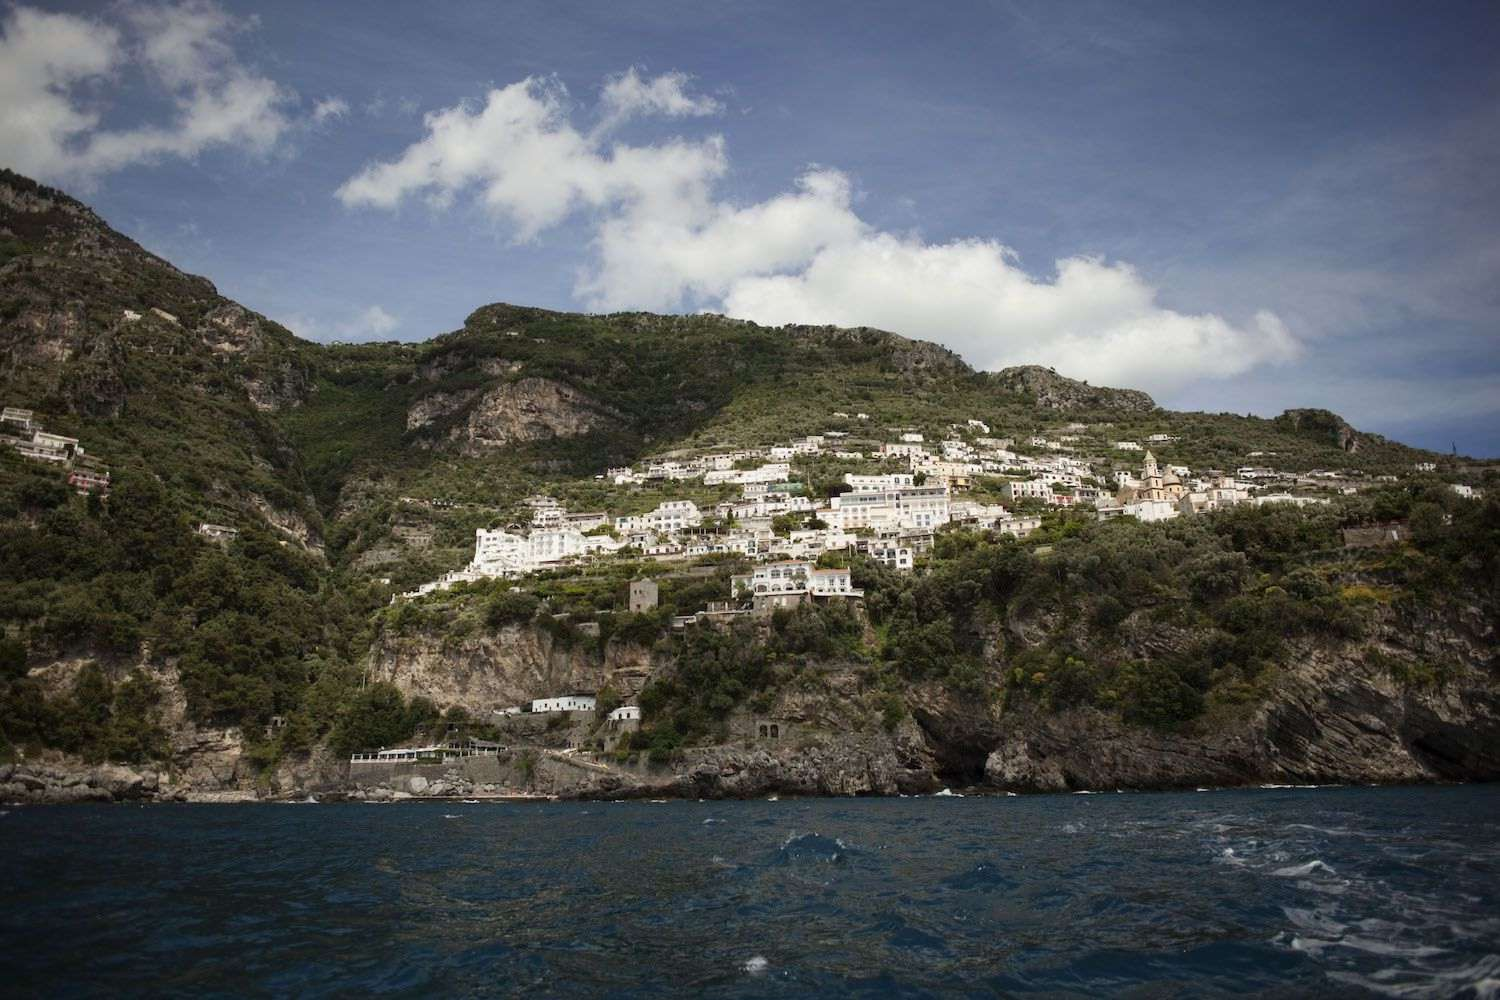 Amalfi coast and Positano